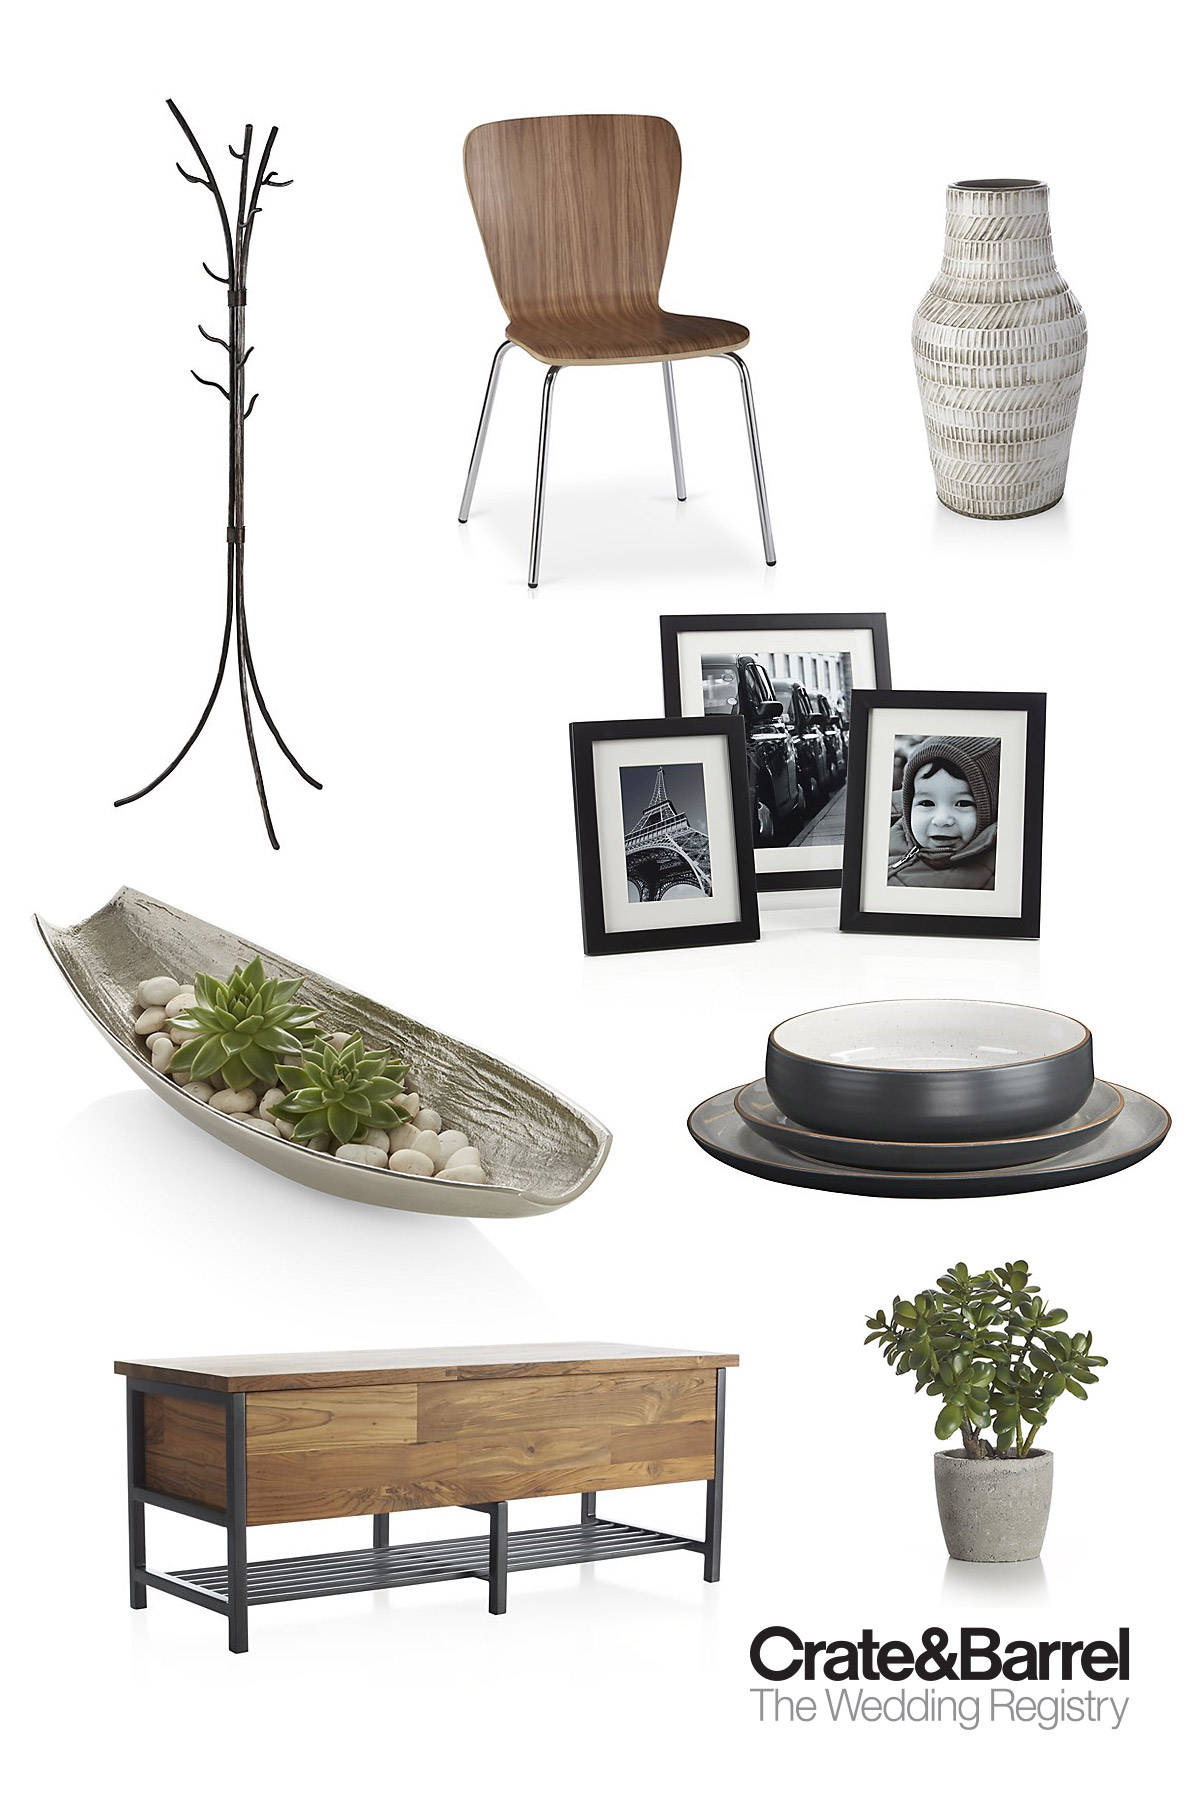 Crate And Barrel The Wedding Registry Bridal Gift